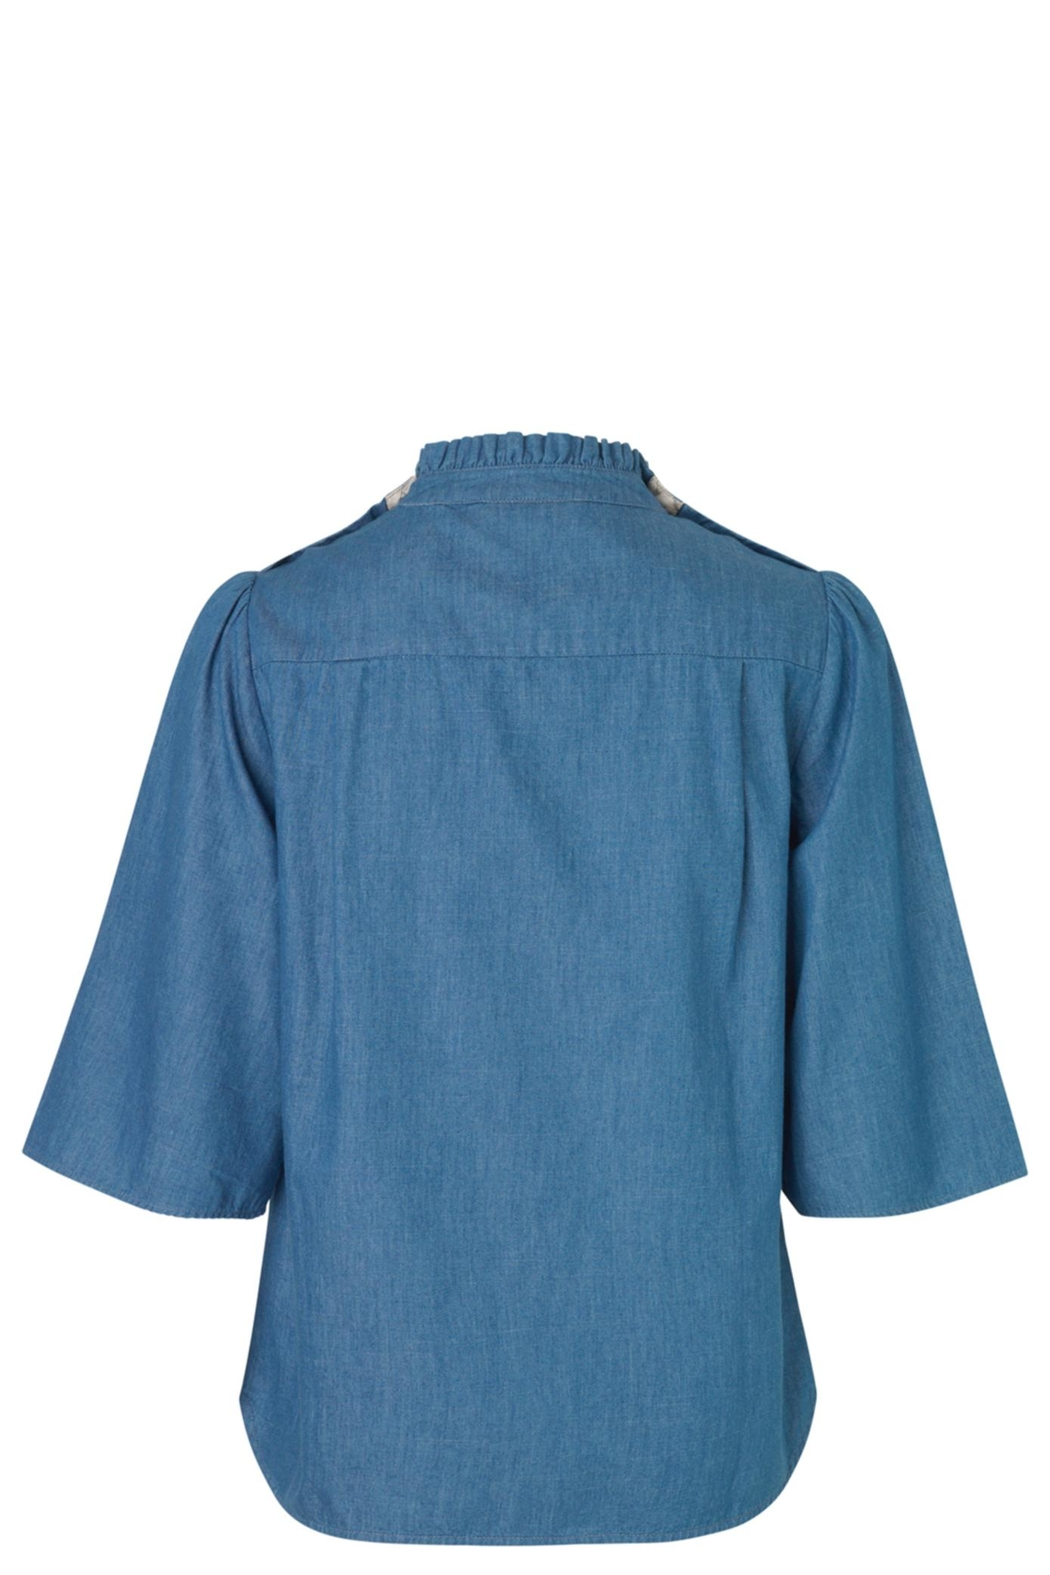 Noa Noa Denim Shirt - Front Full Image